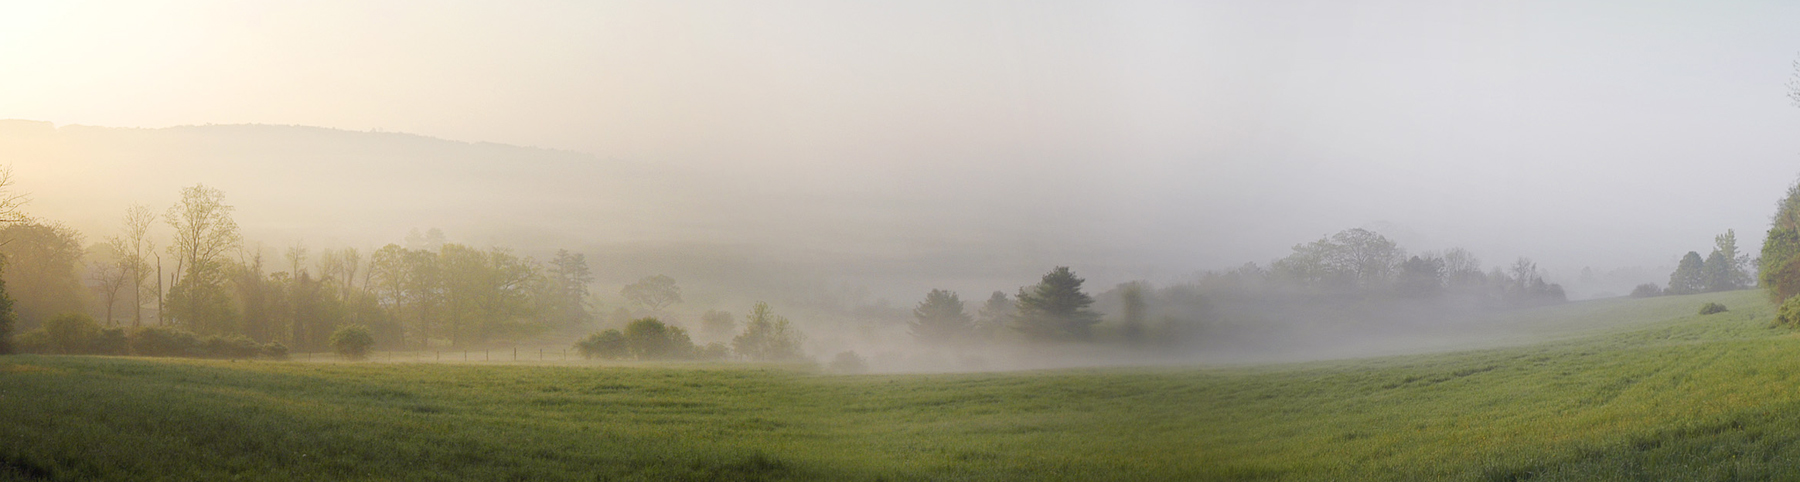 Mist on The Berkshires Kevin Sprague